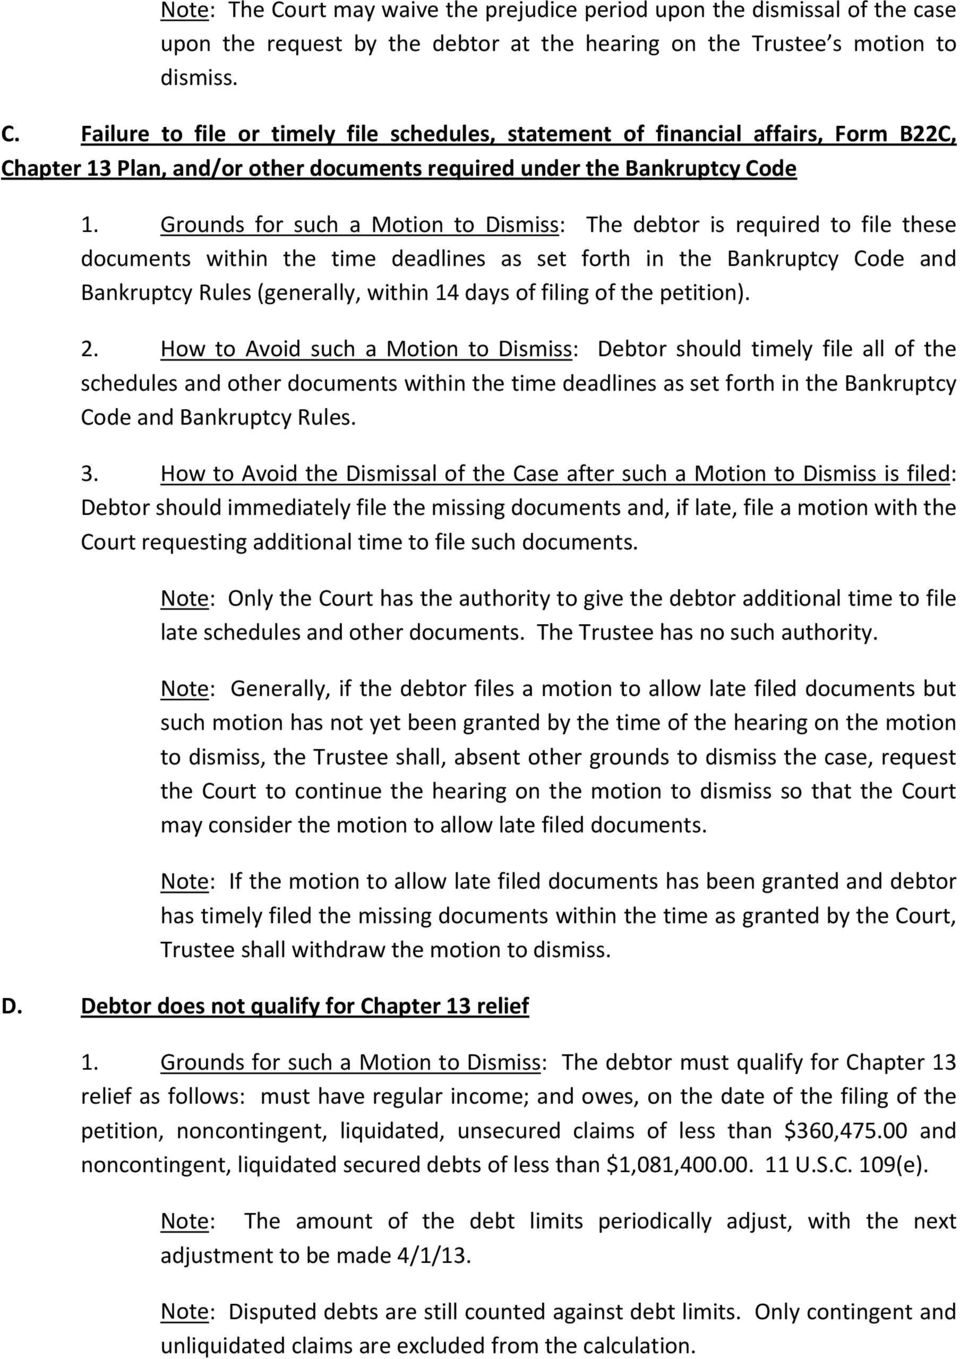 MEMORANDUM ON TRUSTEE S MOTIONS TO DISMISS - PDF